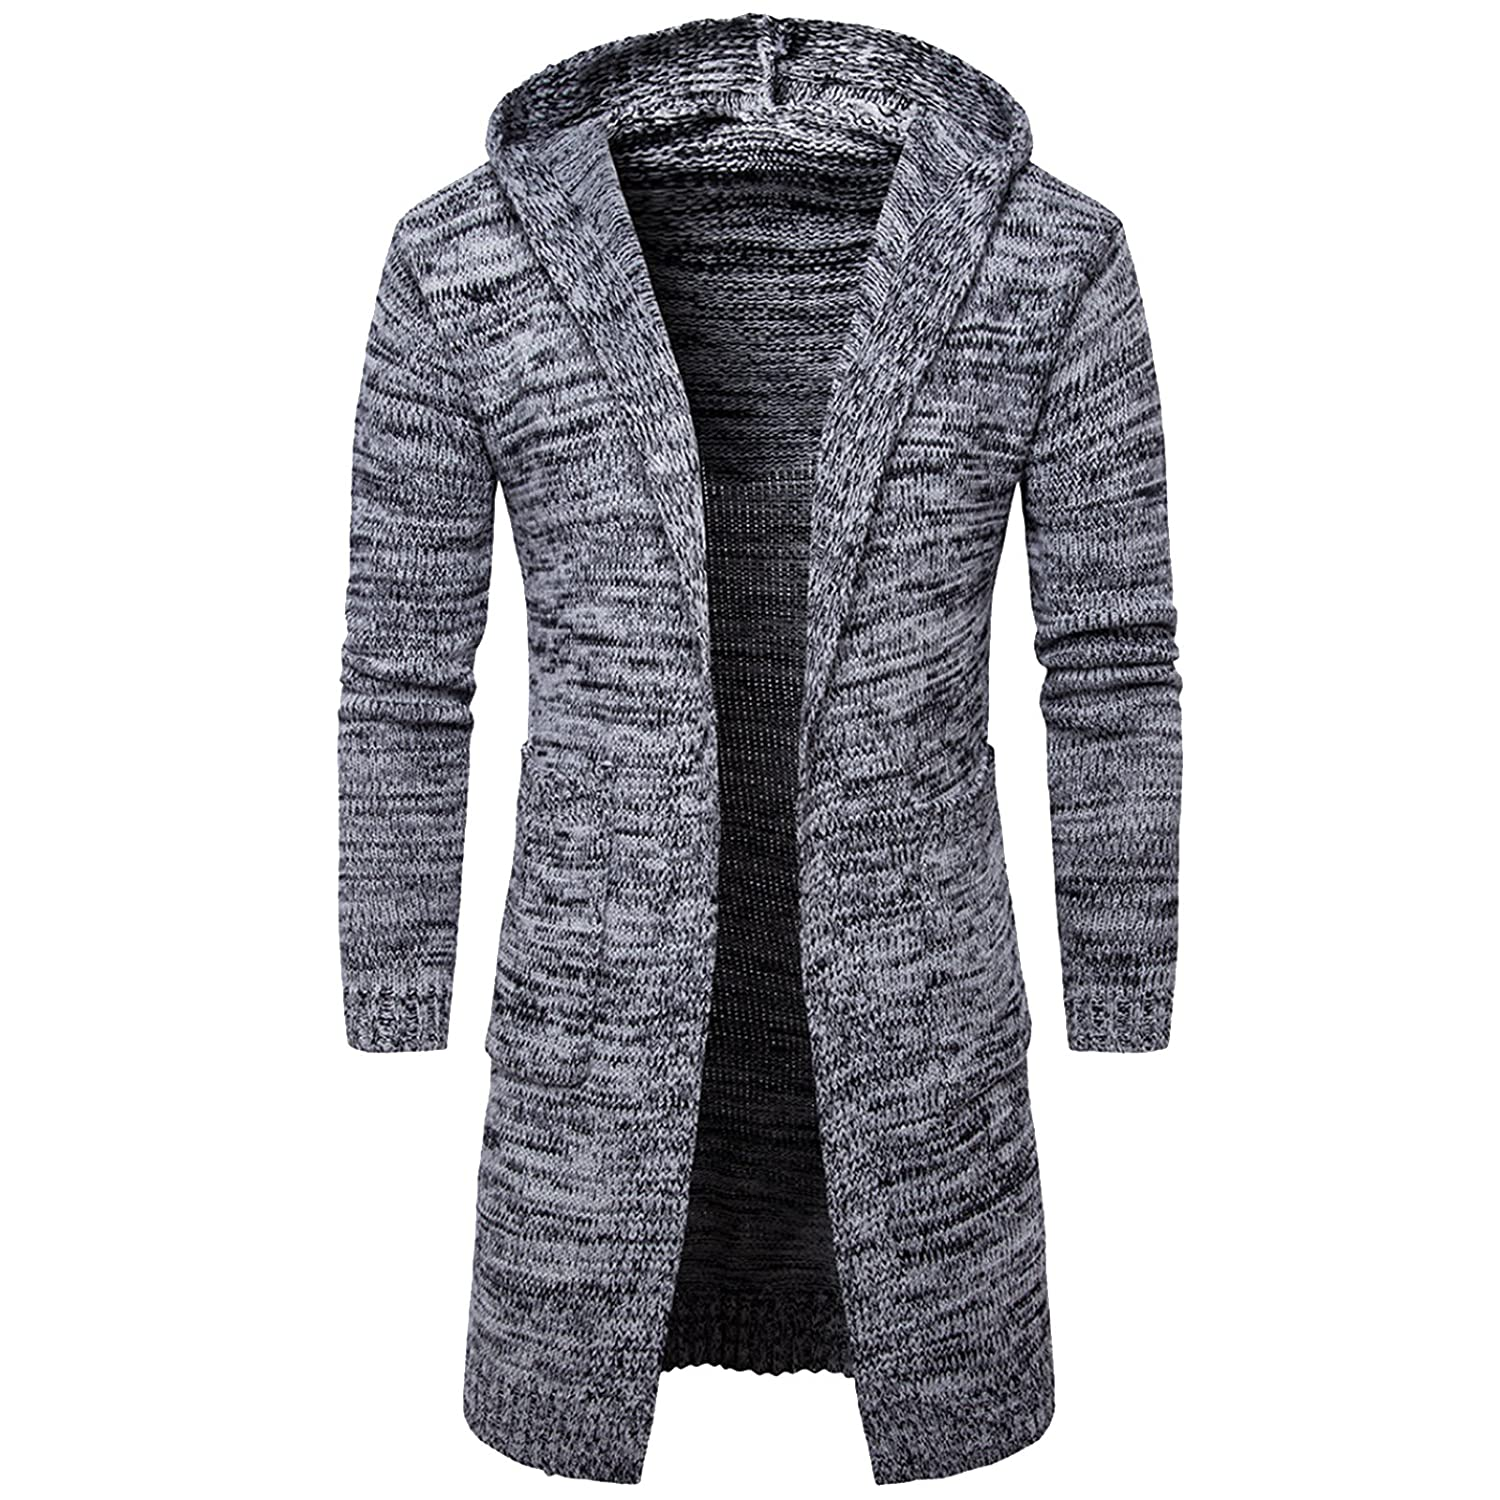 WSLCN Mens Outerwear Long Sweaters Hooded Knitted Open Edge Thicker Cardigan AW-Y913